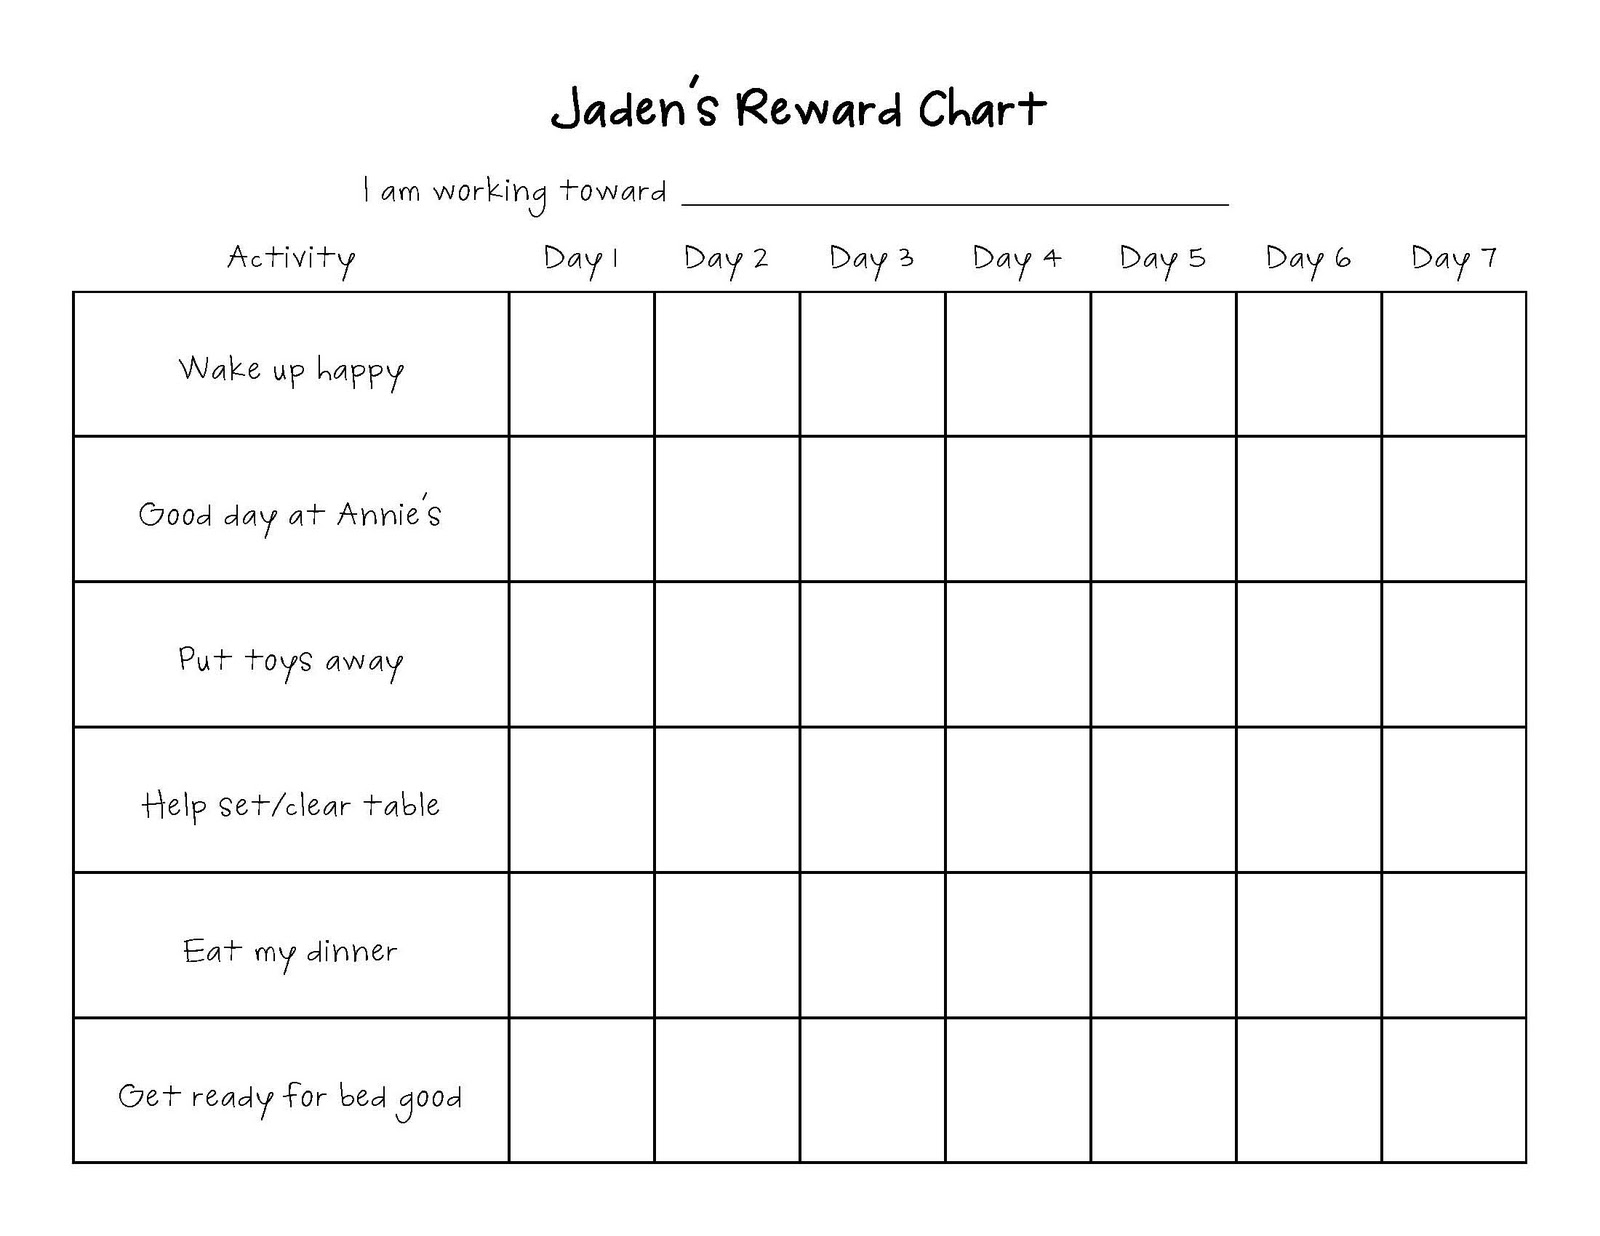 sticker rewards chart